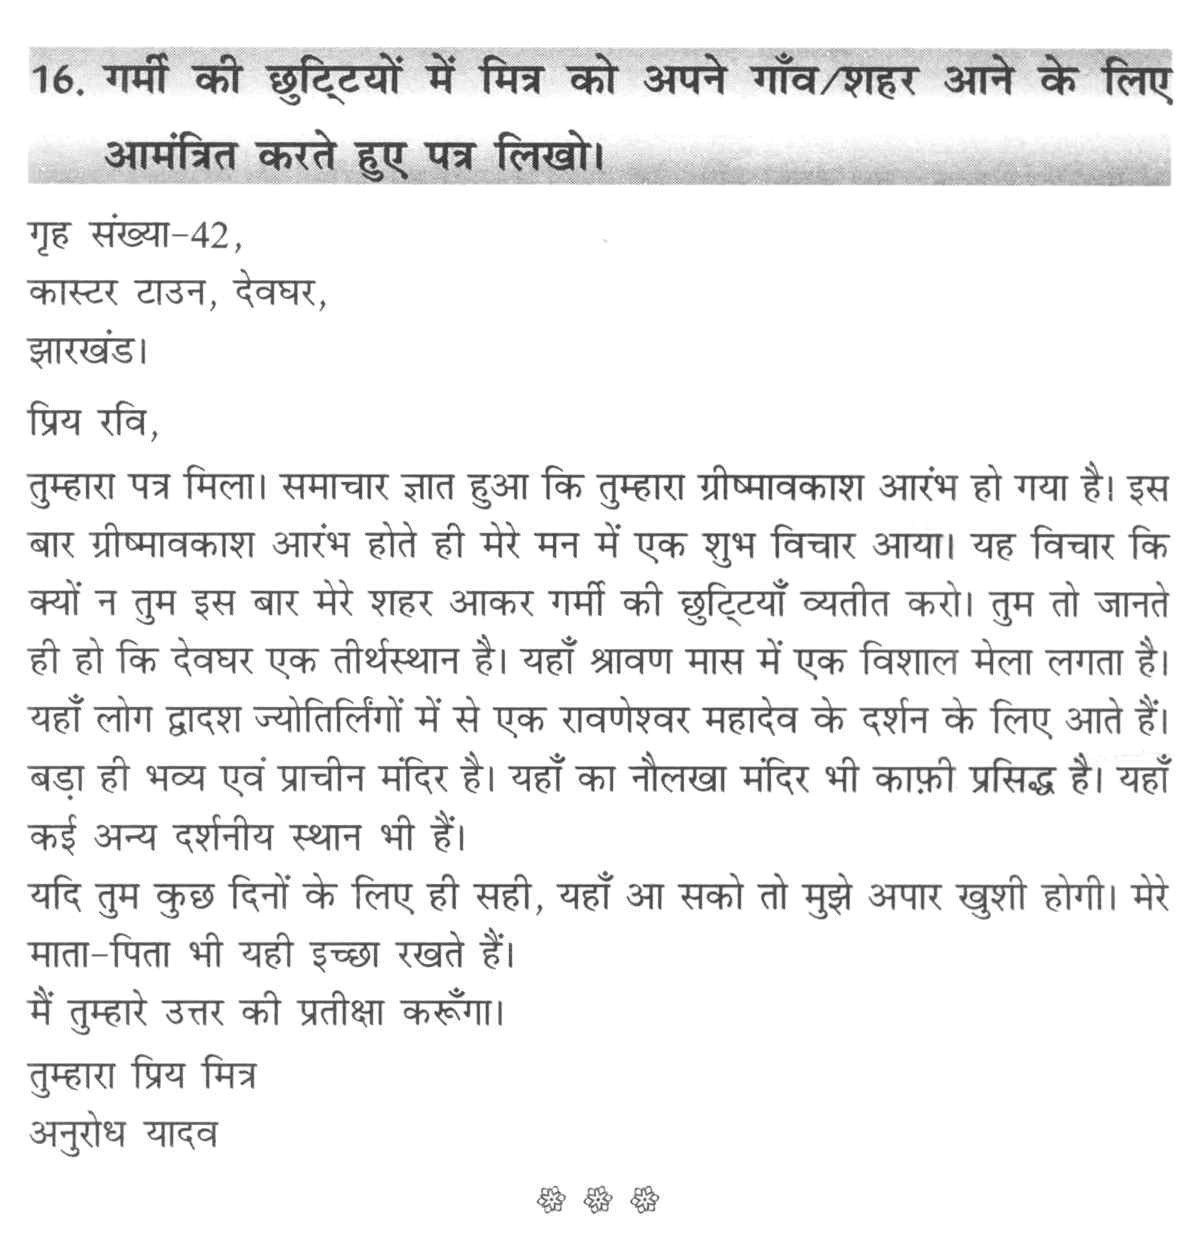 letter writing to invite a friend for birthday party in hindi